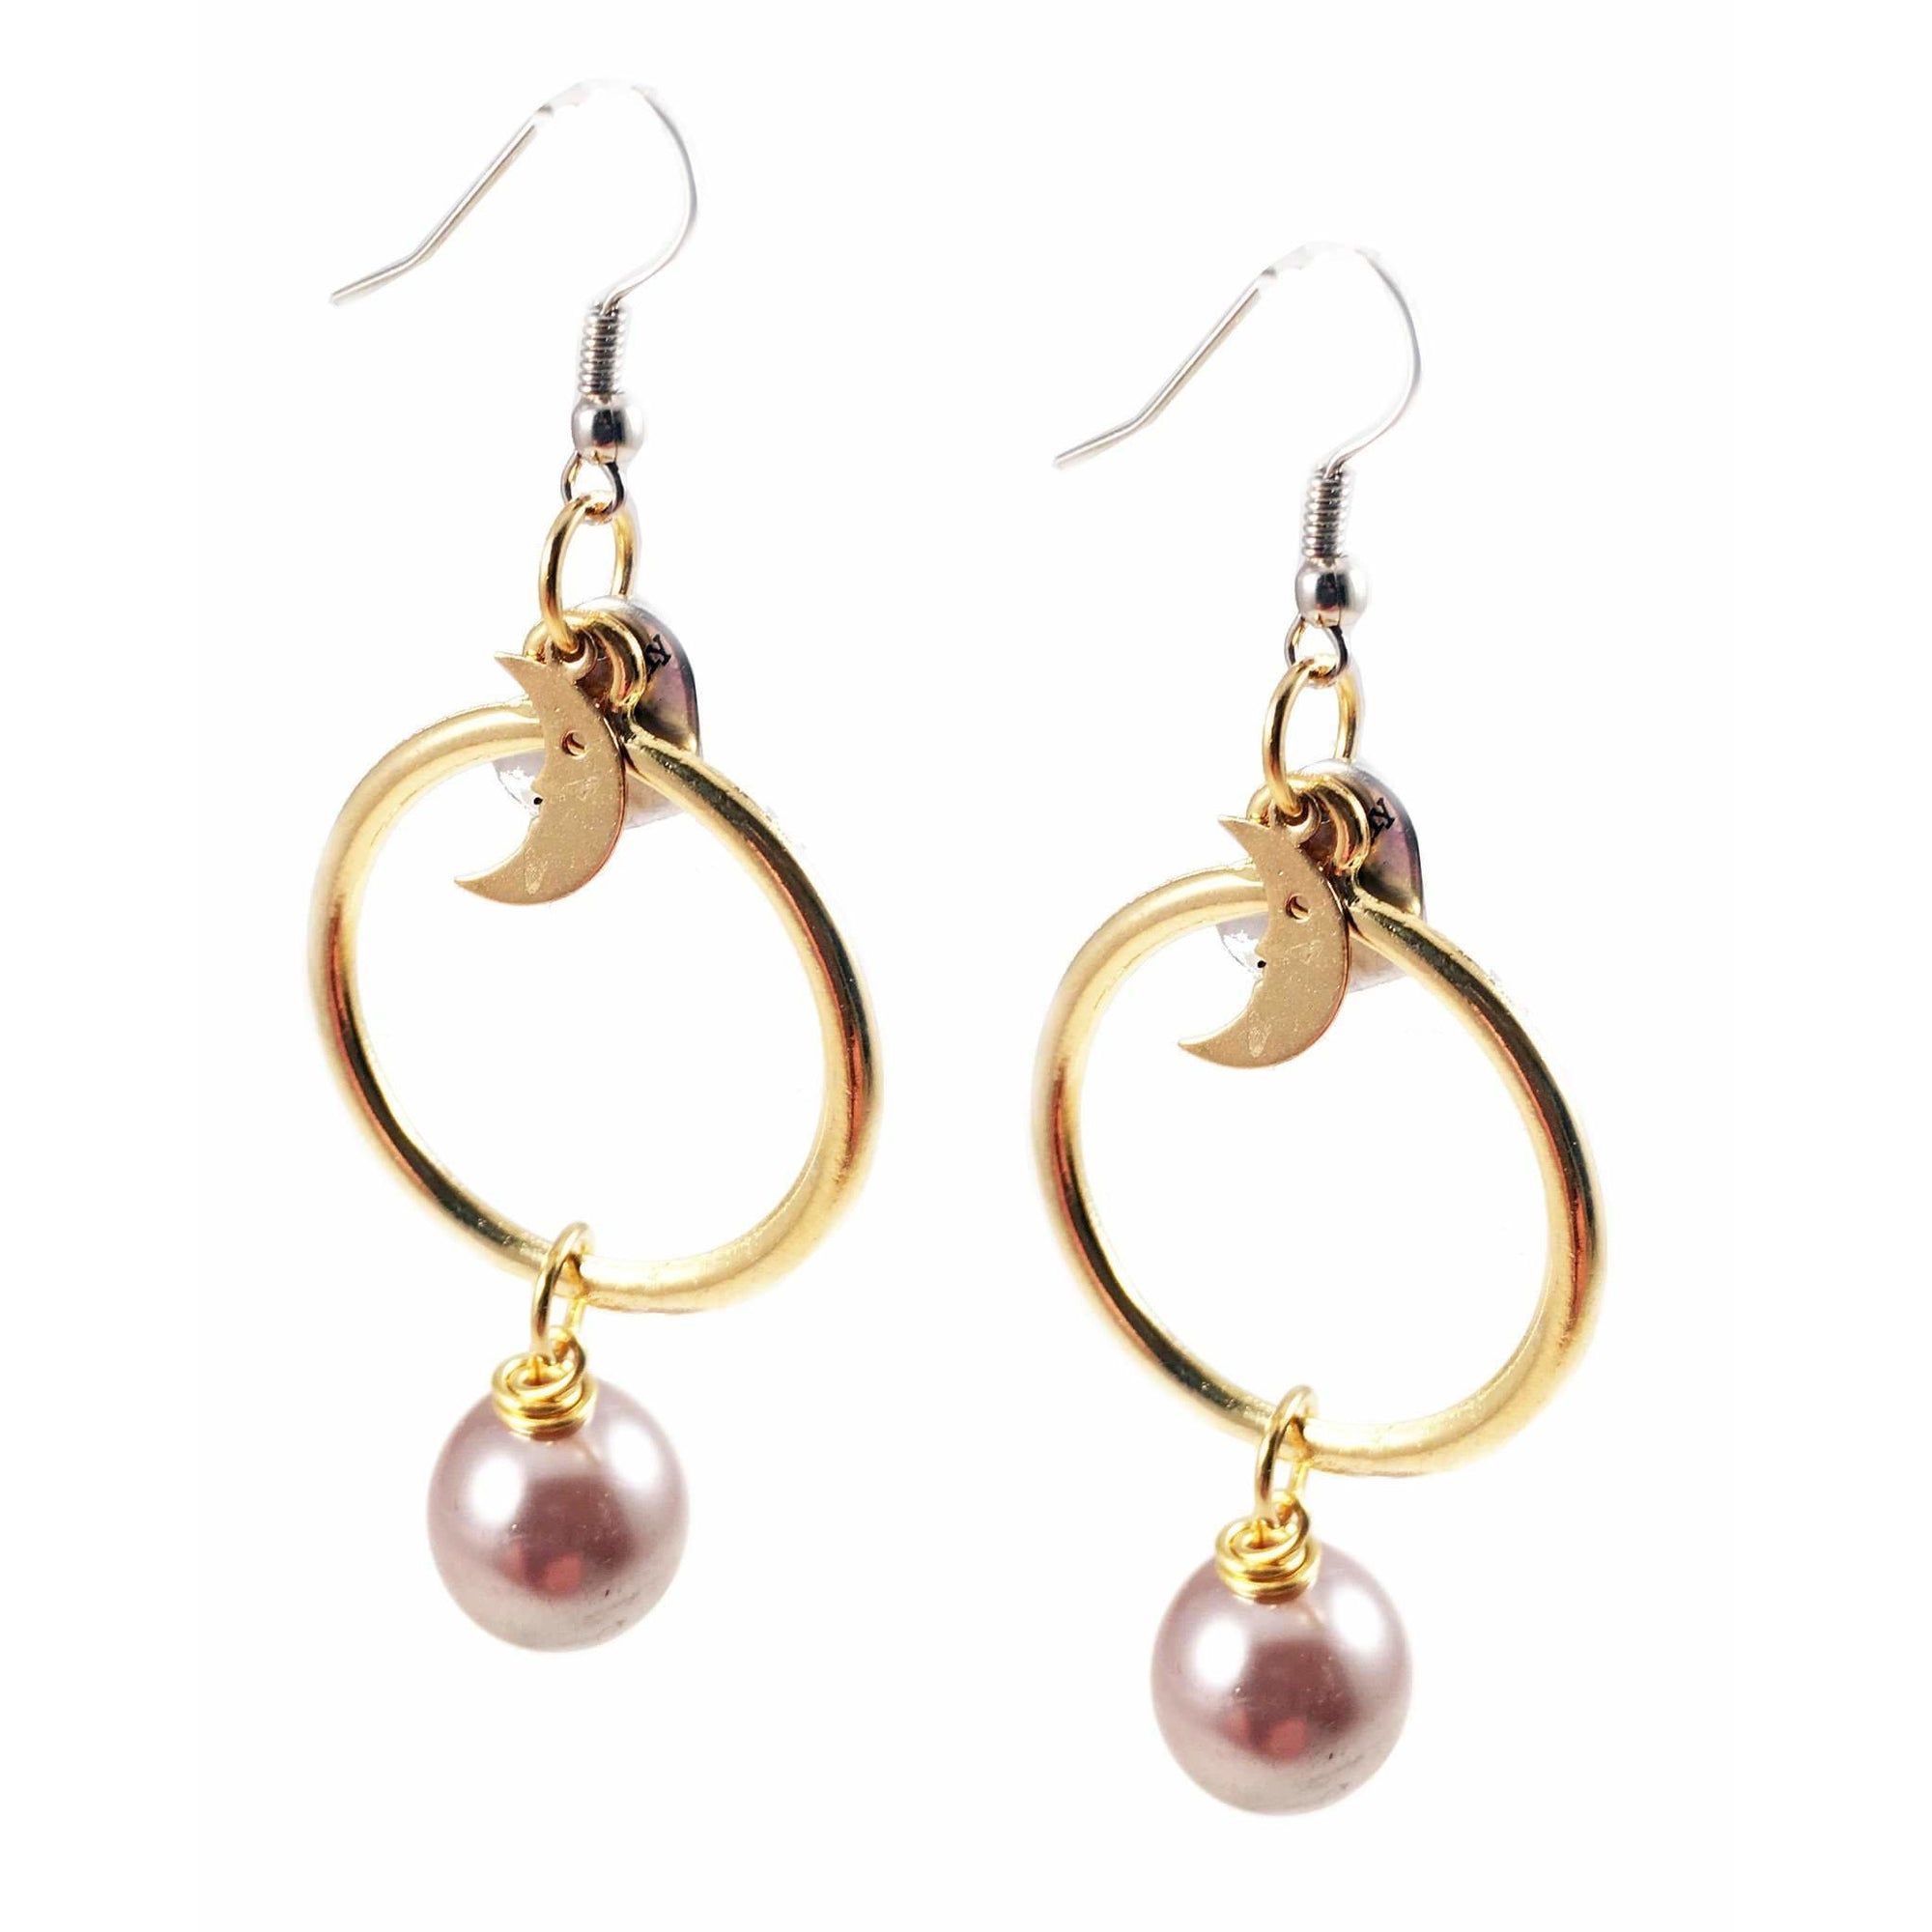 18kt Gold Plated and Silver Plated Hoop Earrings With Pearls and Moon Charms - Miraposa